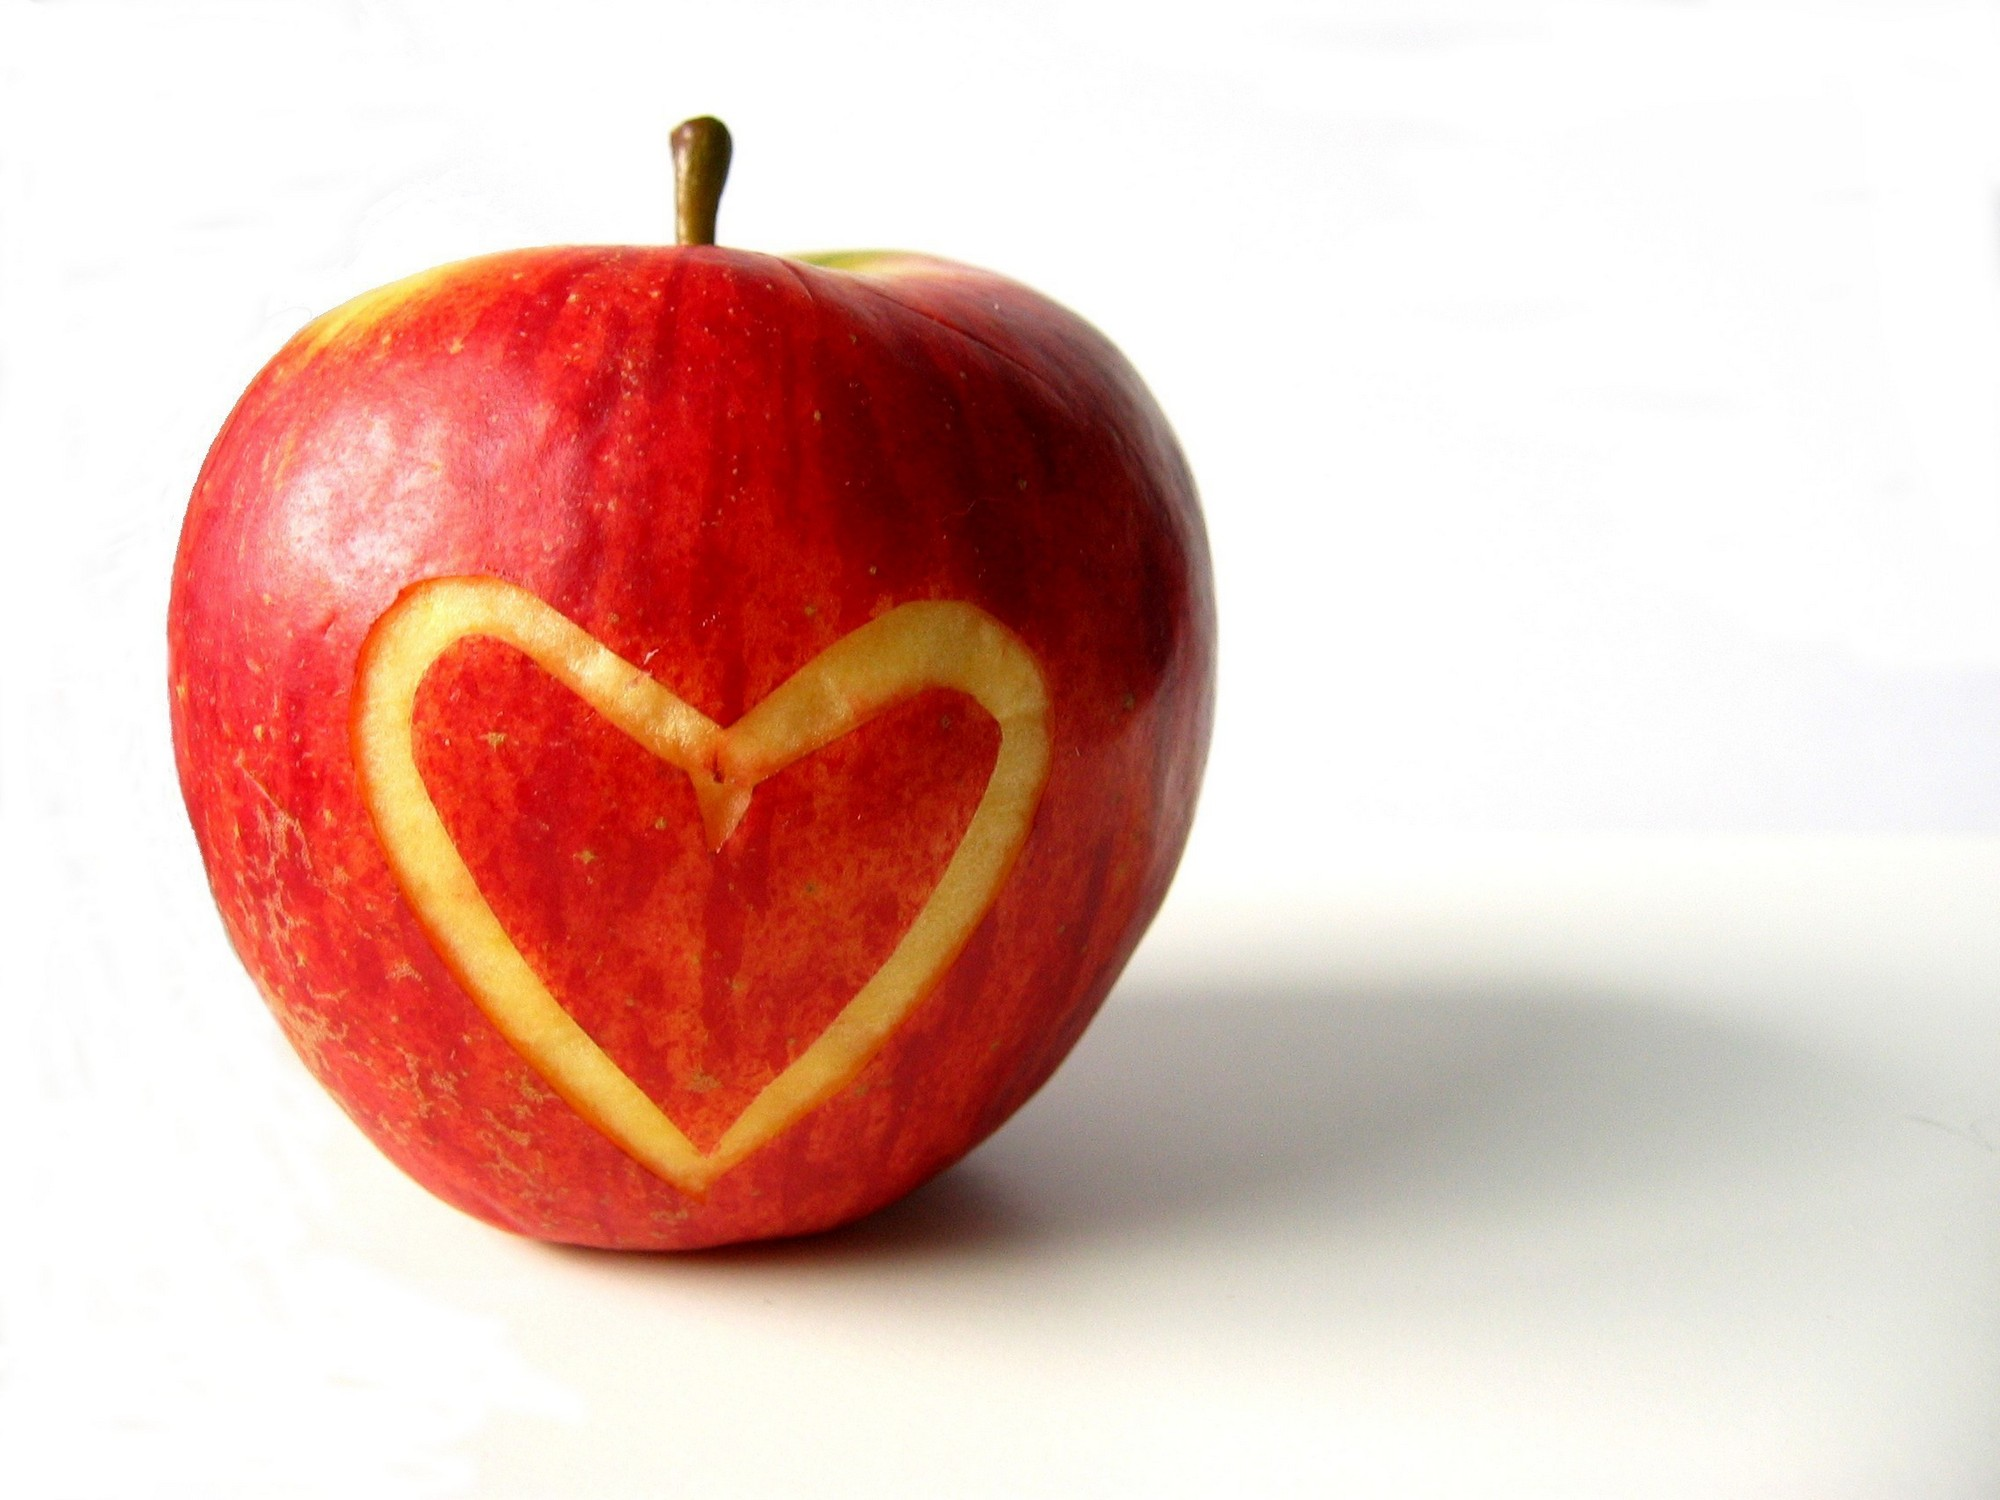 heart-health-food-apples-zdrave-mladeji